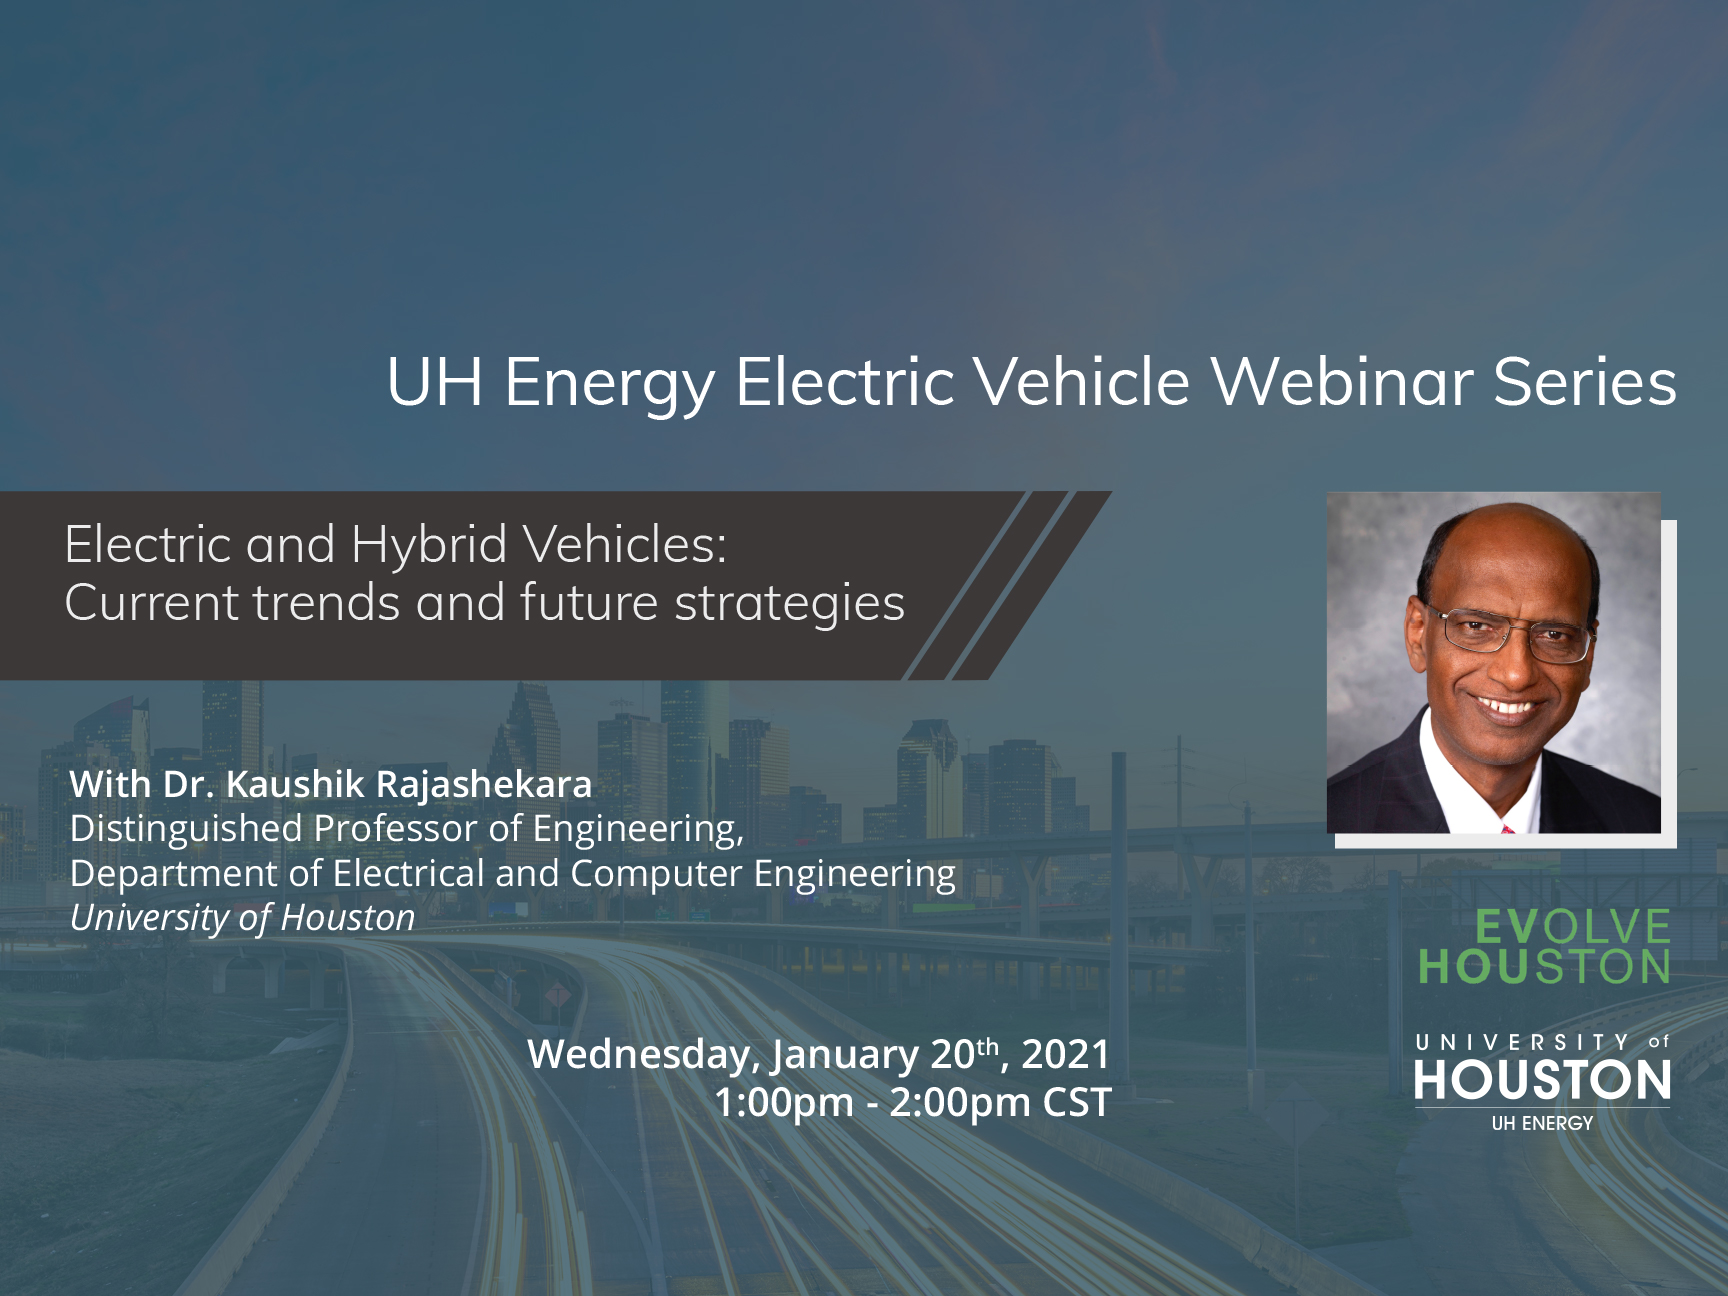 Electric and Hybrid Vehicles: Current Trends and Future Strategies Image